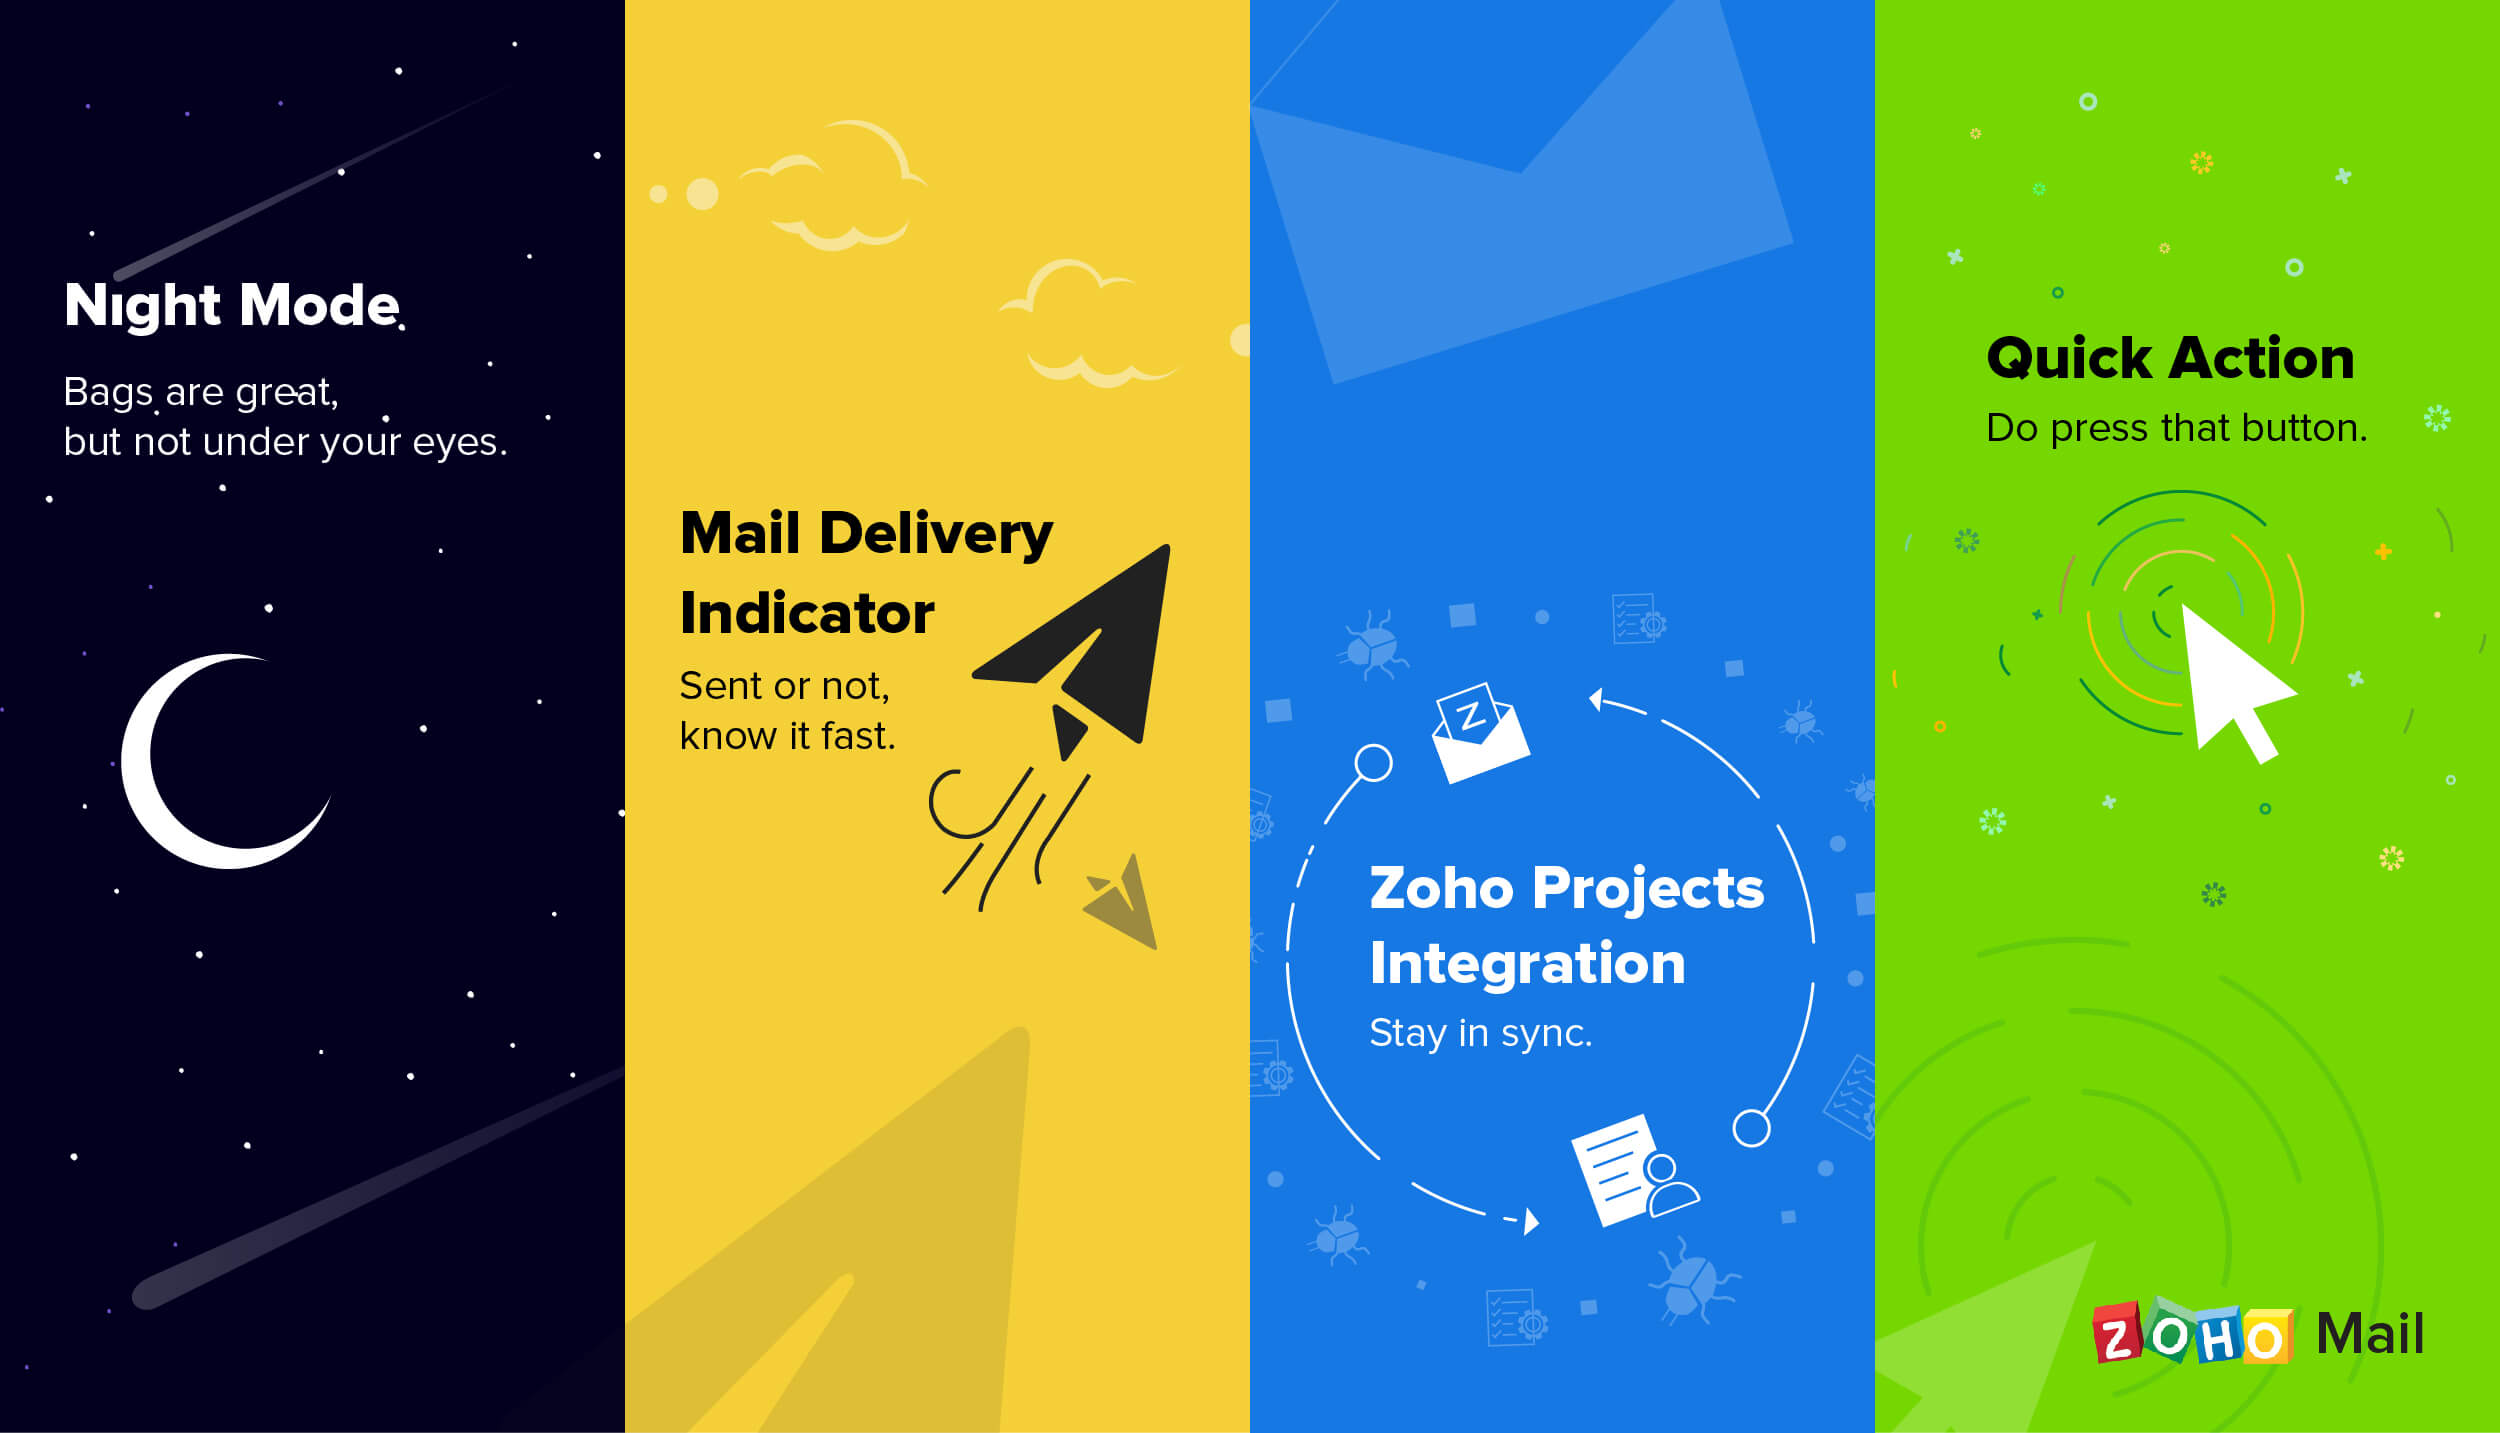 Announcing Night Mode, Quick Actions, and more in Zoho Mail